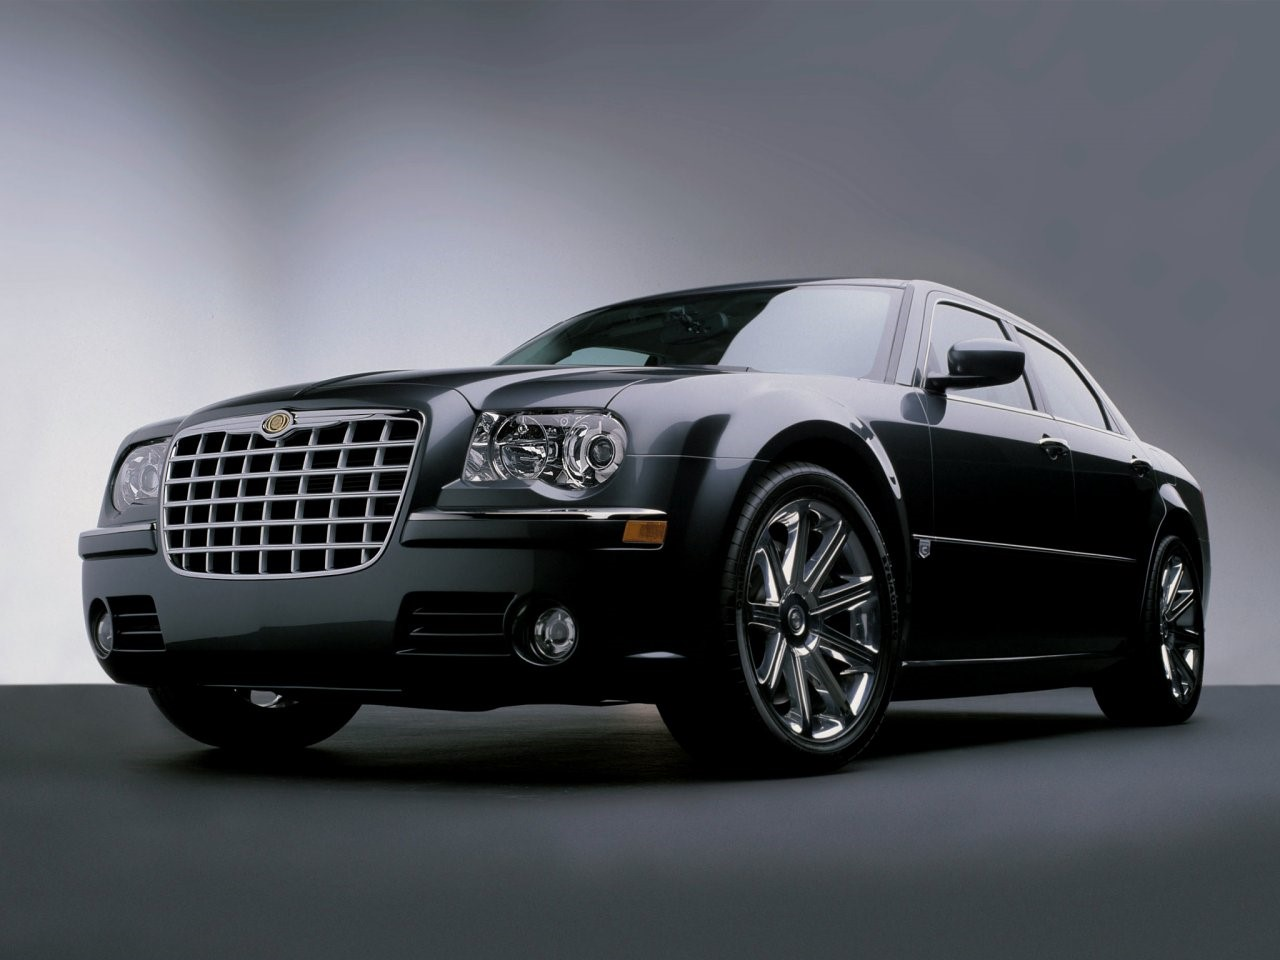 2003 Chrysler 300C concept 6